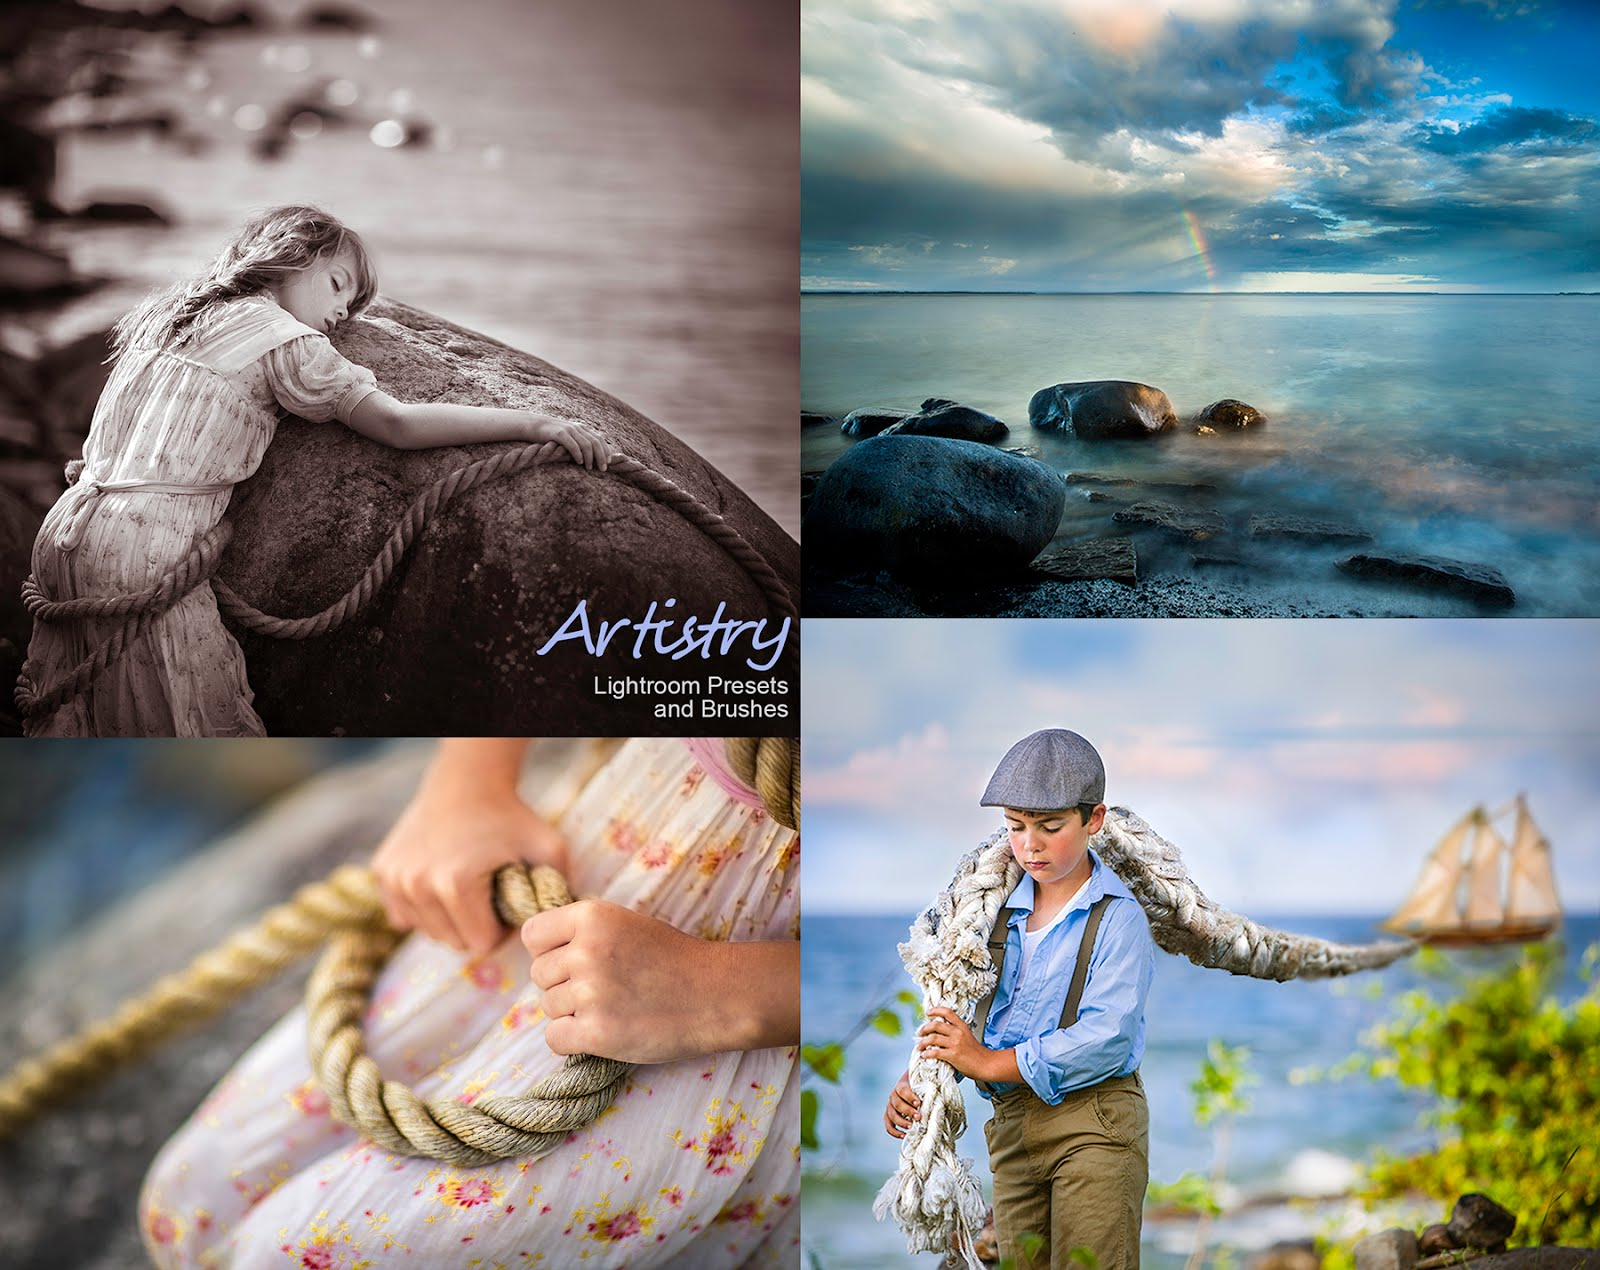 Artistry Lightroom Presets